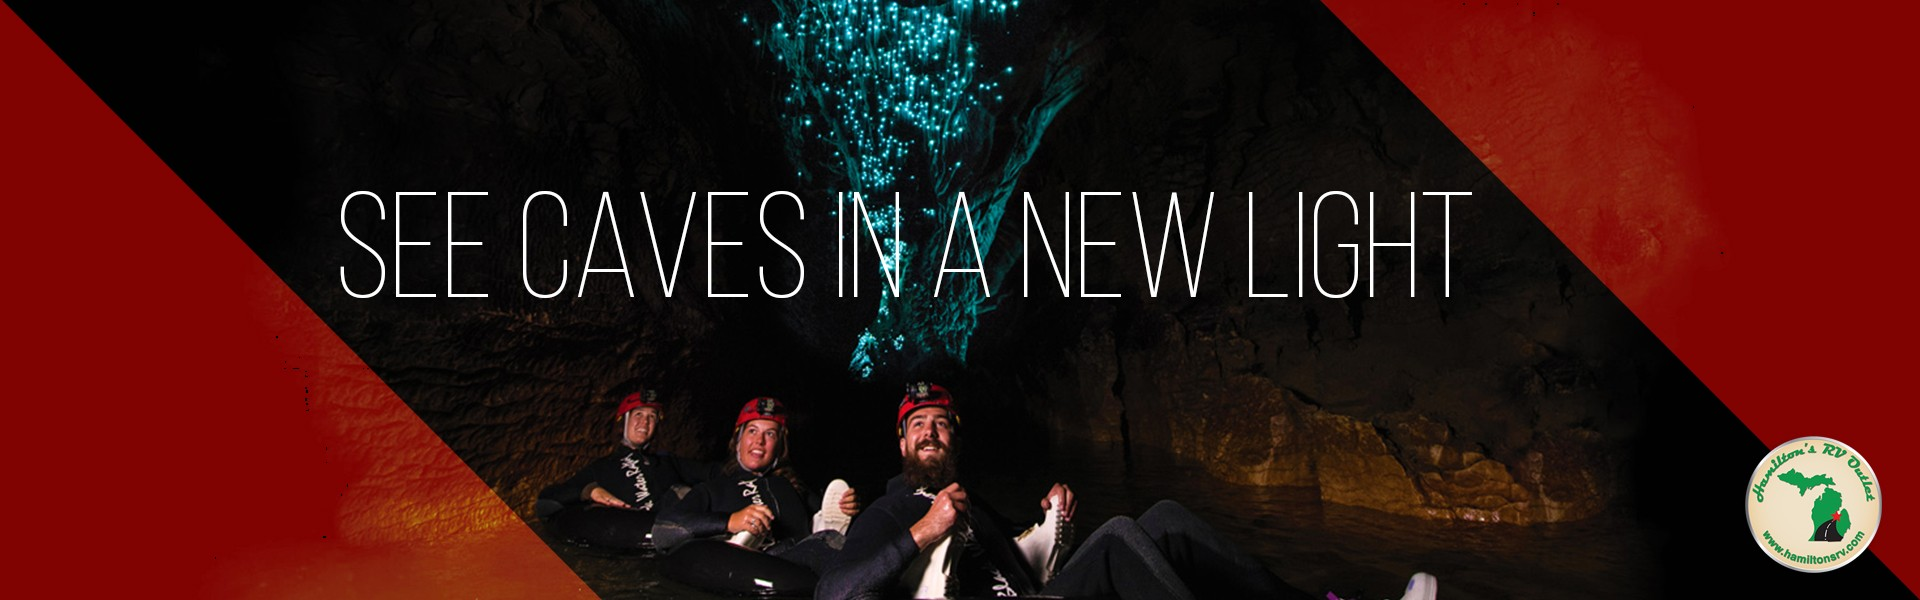 see-caves-in-a-new-light-tubing-in-waitomo-glowworm-caves-new-zealand-feature